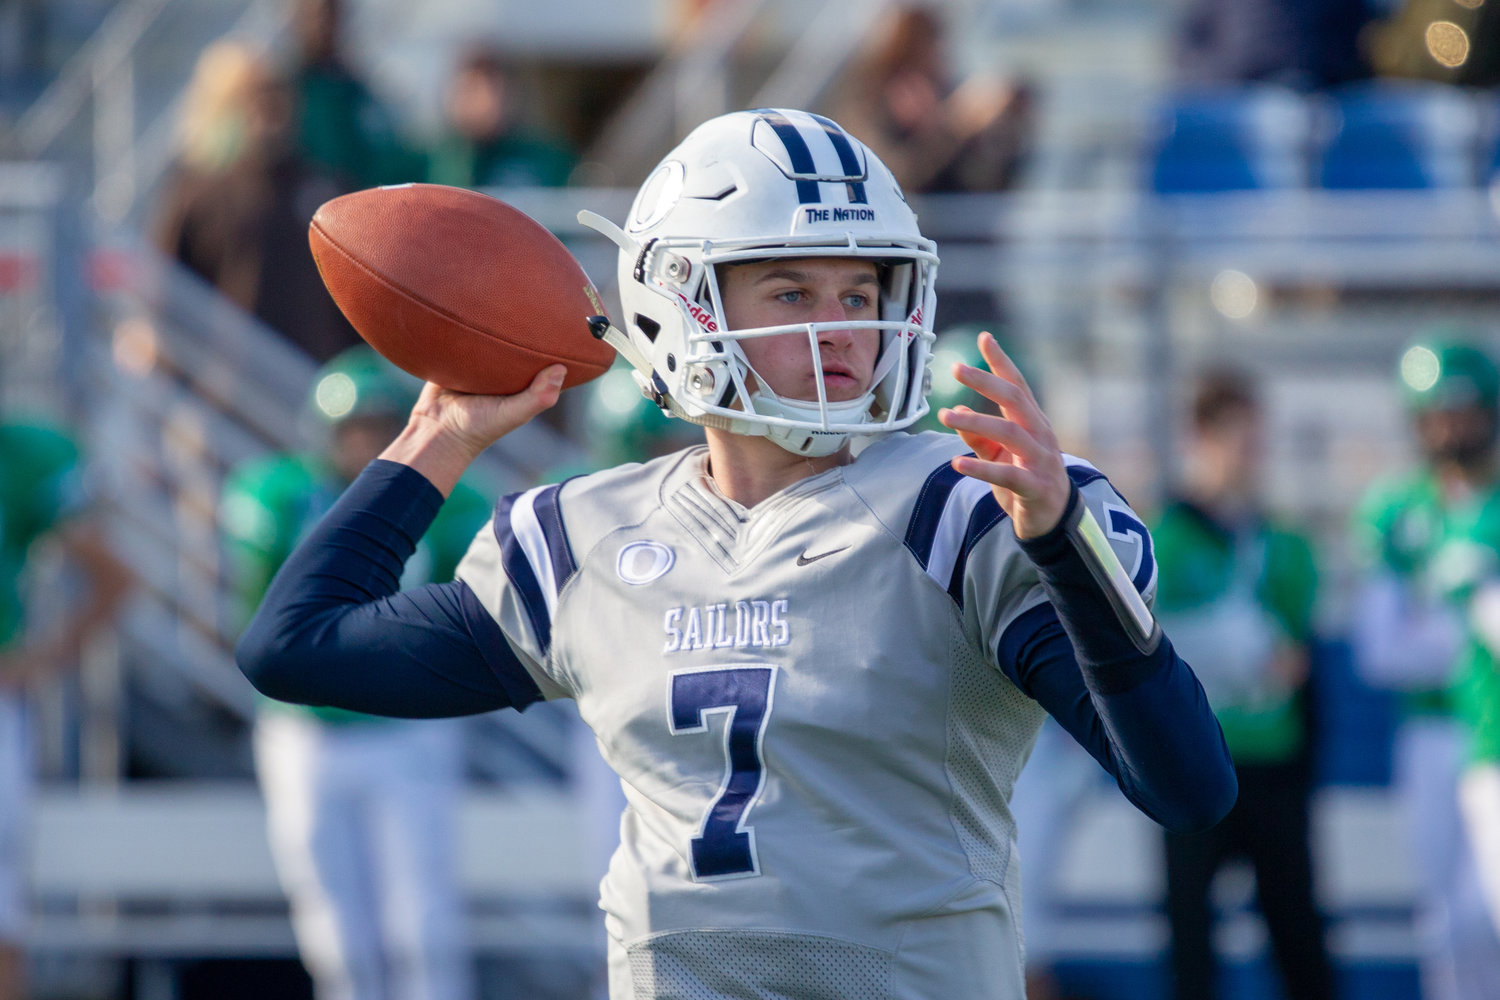 McKee had a record-setting season under center for Oceanside as a freshman last fall.